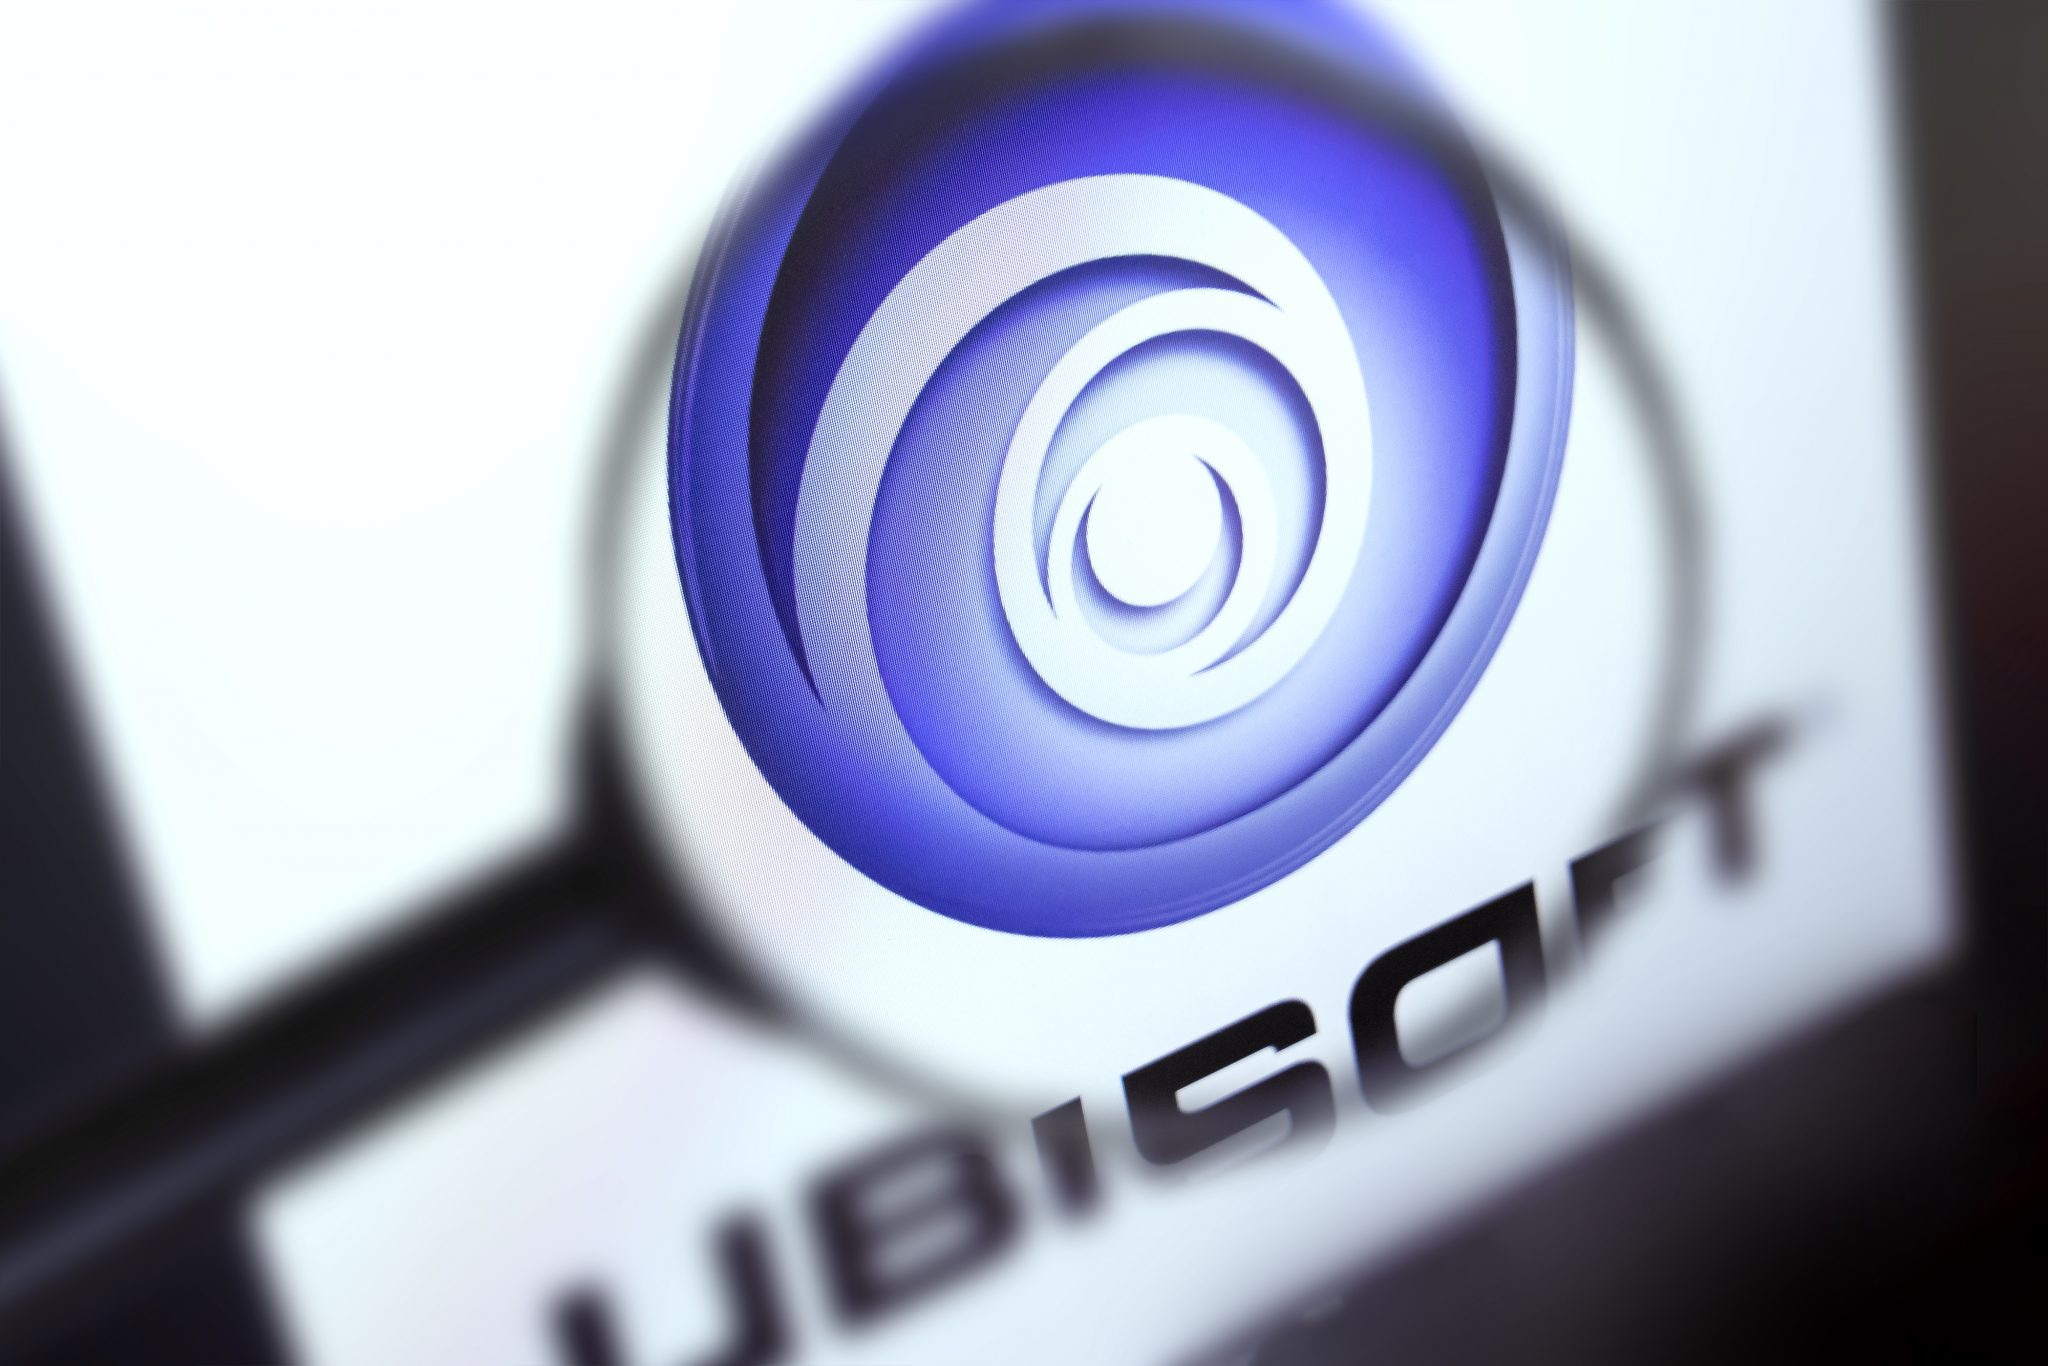 Brest, Belarus, March 15, 2019. Ubisoft home page, view through a magnifying glass. Ubisoft company logo is visible. Soft focus.